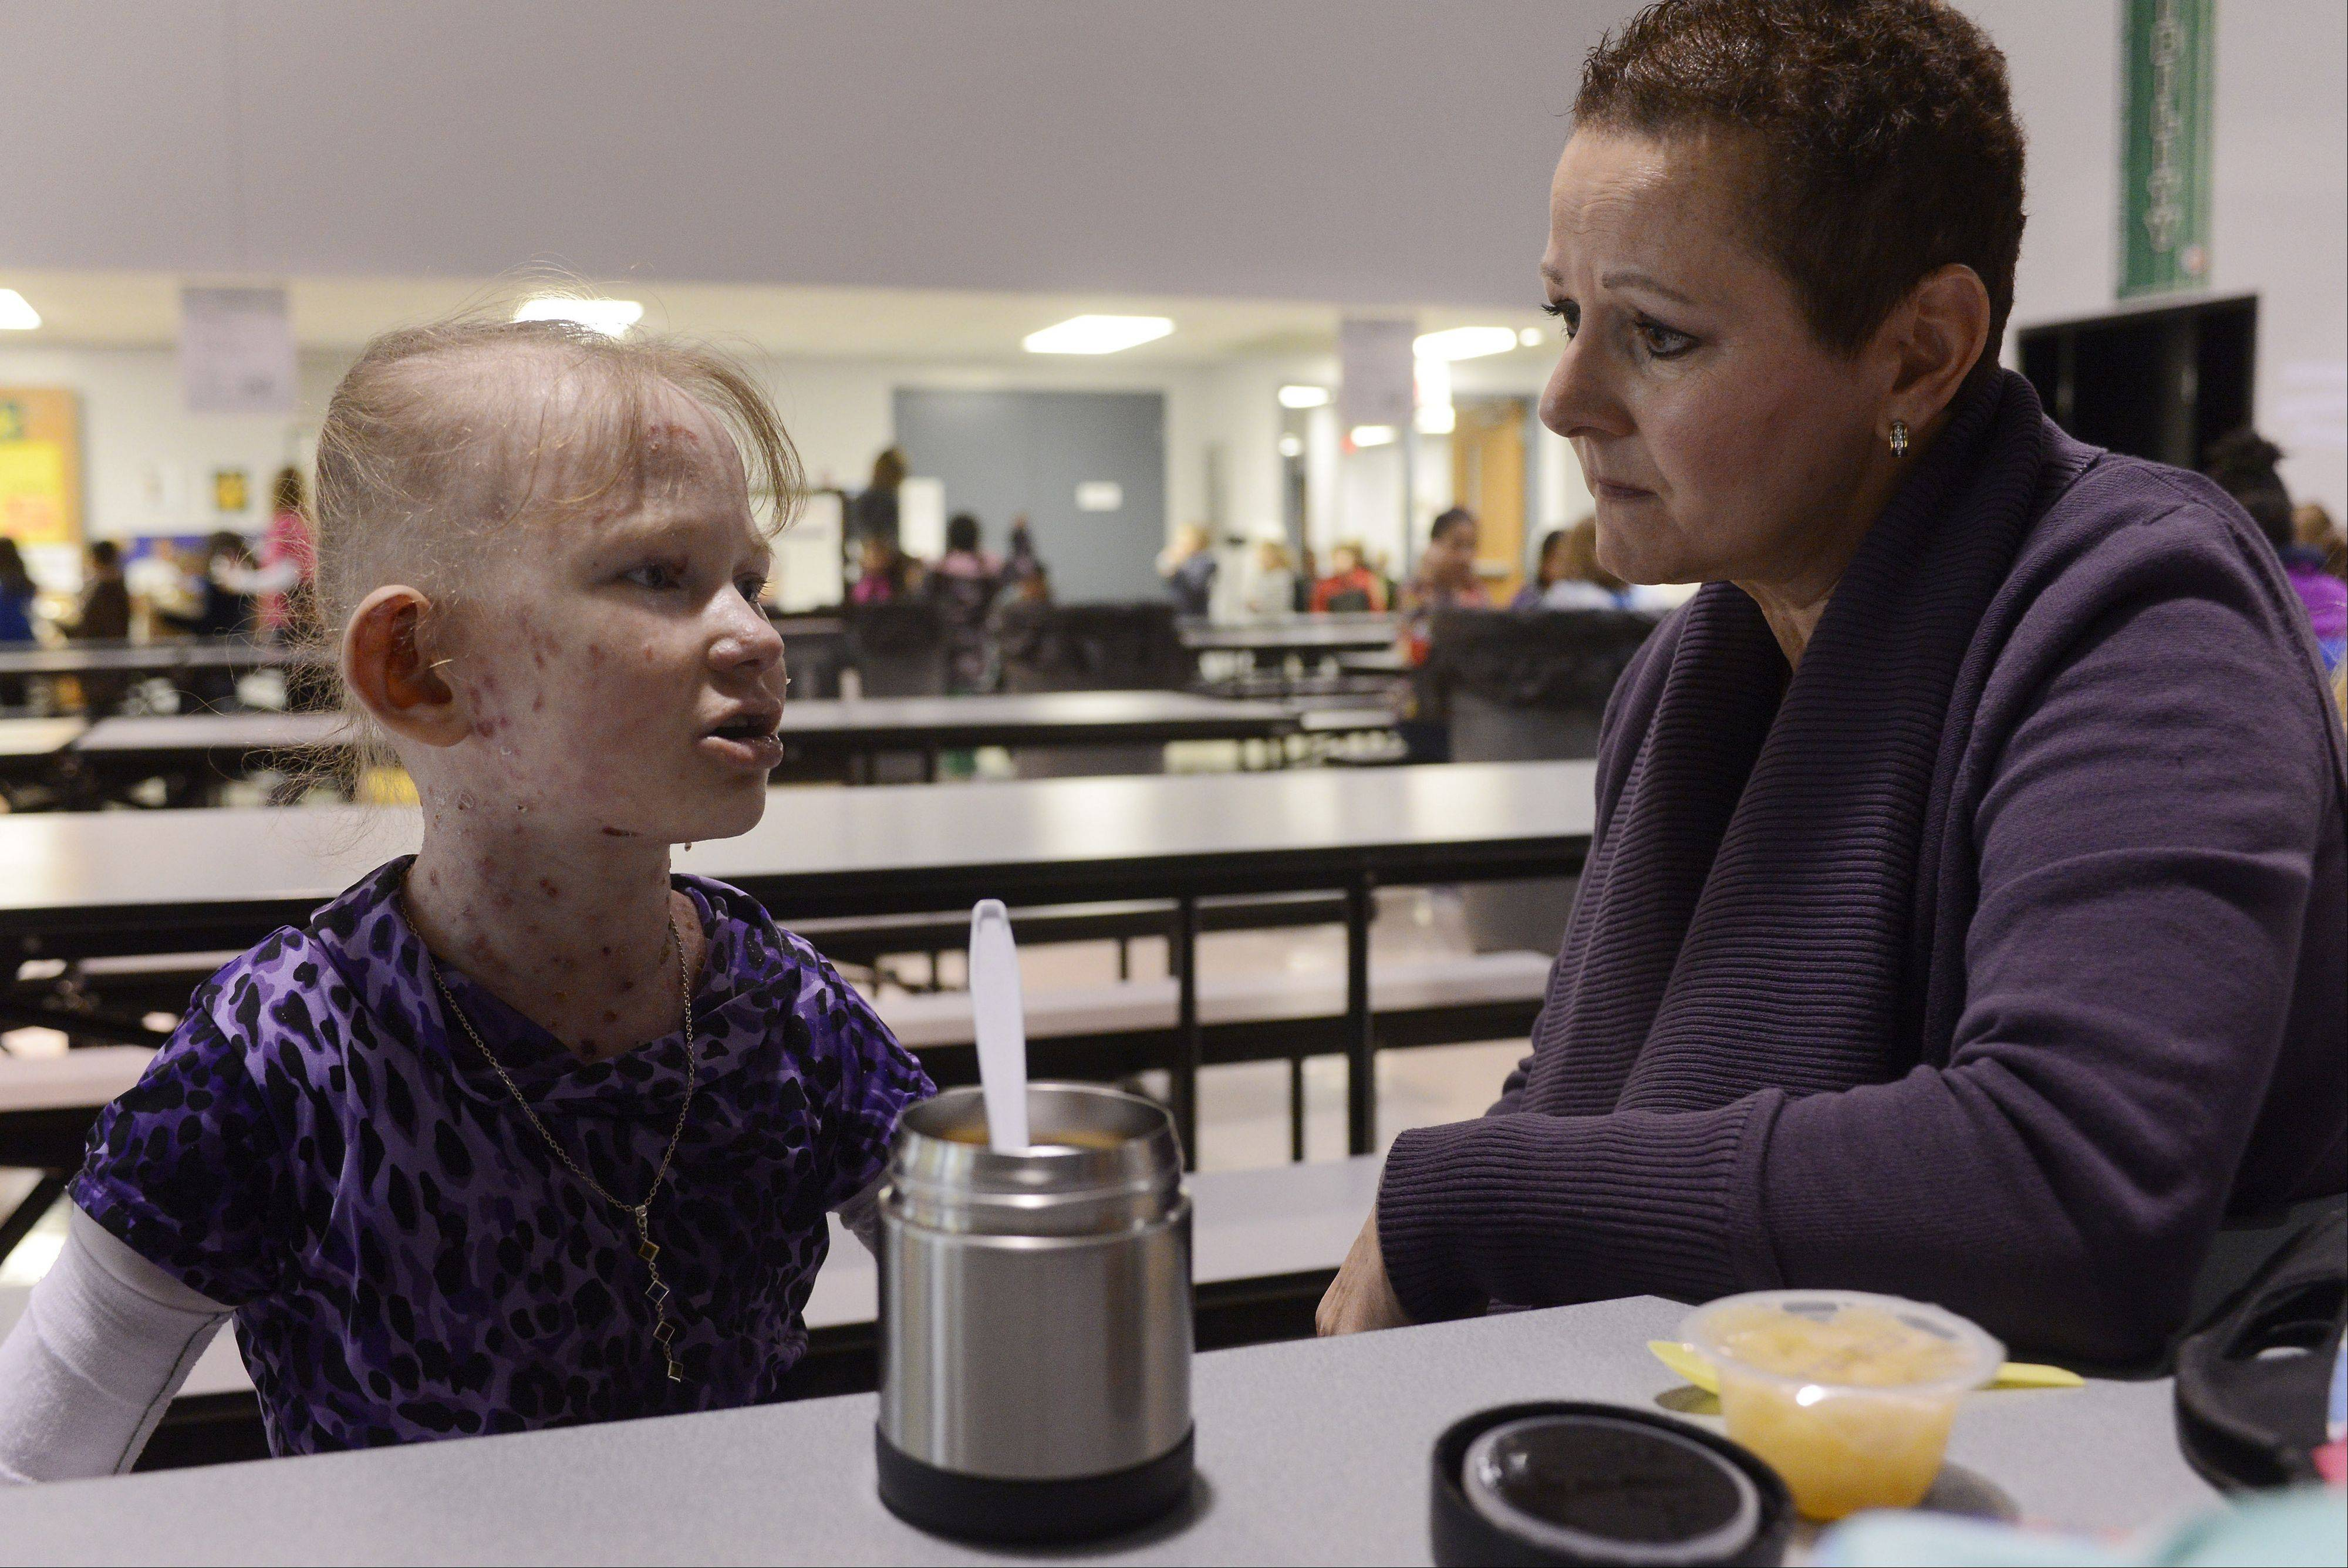 Having developed a true friendship during their three years together, Caroline Provost, 8, talks with Michelle Whiteside, her one-on-one program assistant, as lunch begins at Kimball Hill School in Rolling Meadows.